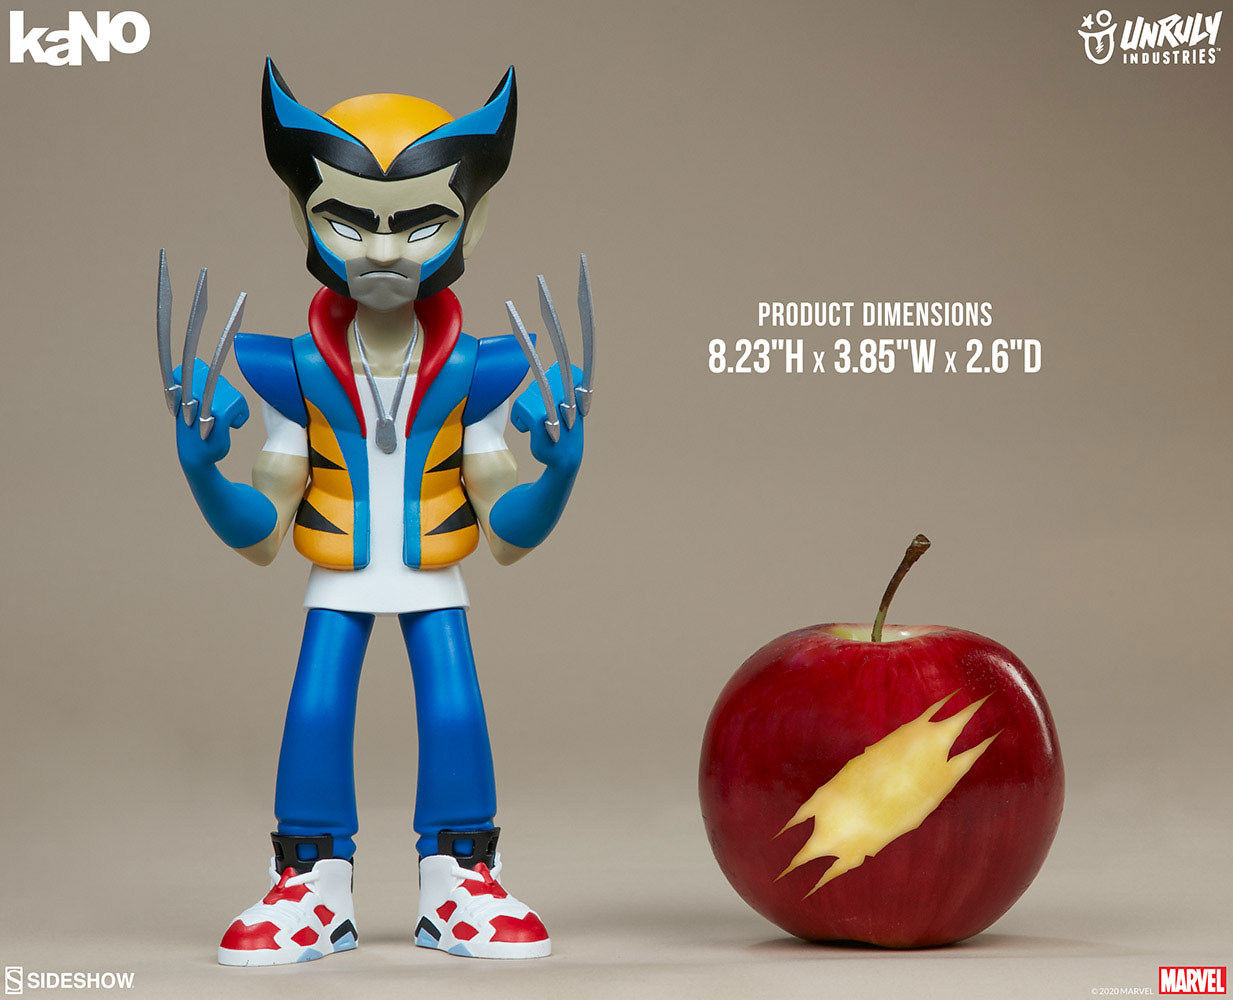 unruly-industries-kano-marvel-wolverine-toy-figure-in-sneakers-2